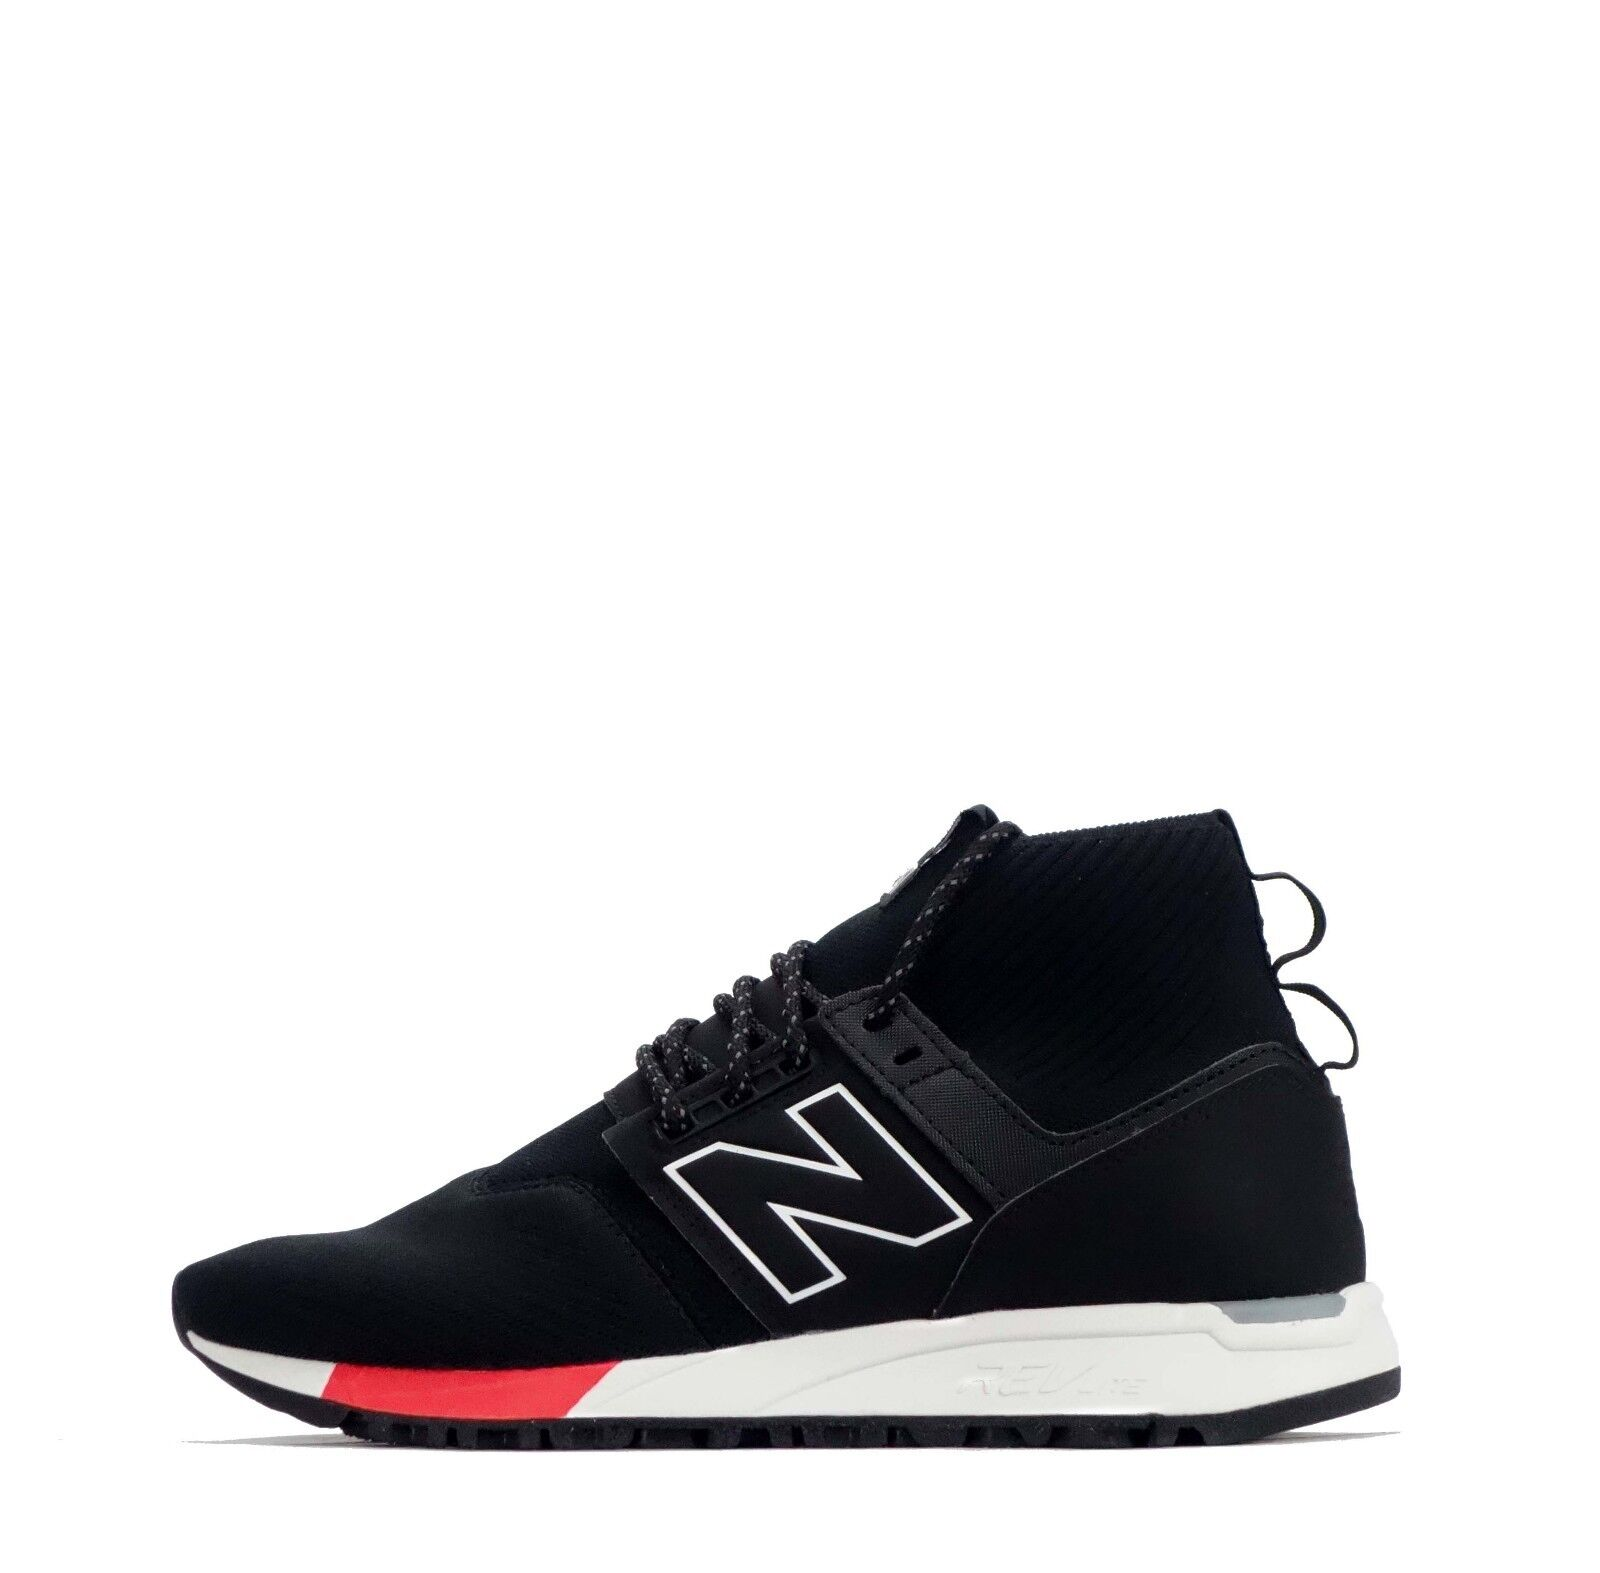 New Balance 247 Men's Ankle Mid shoes in Black White RRP 89.99